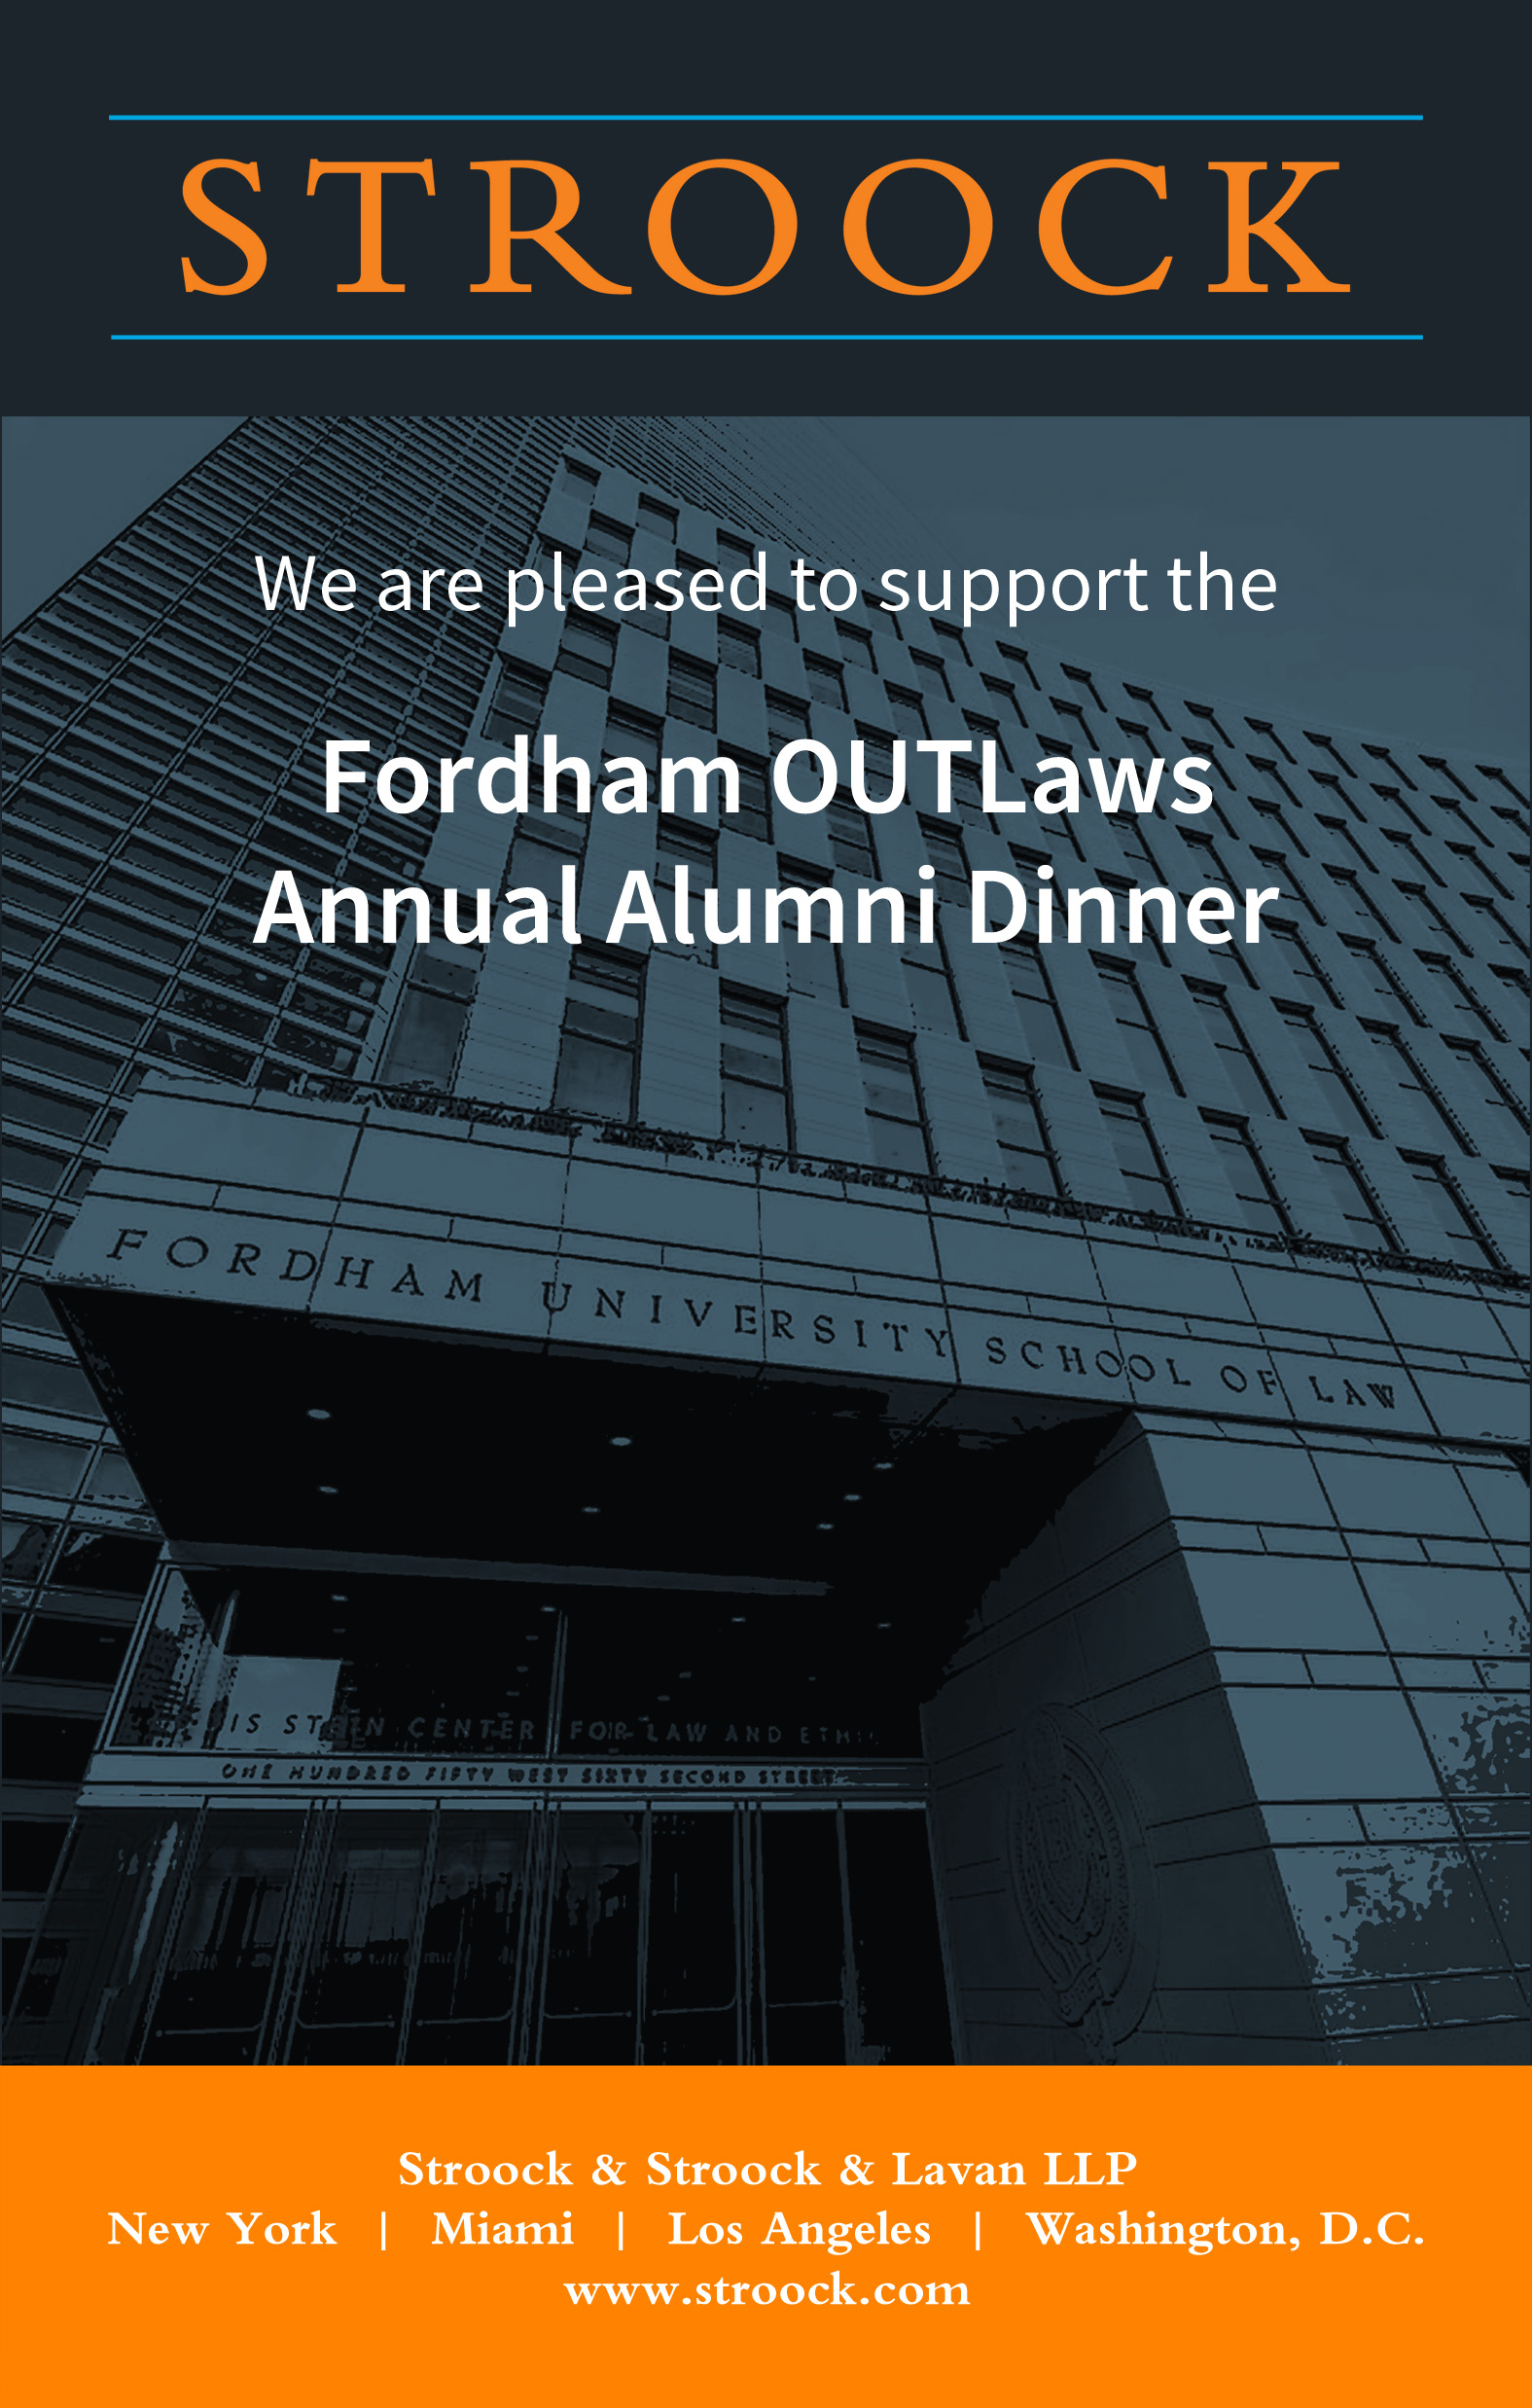 Fordham Outlaws Ad - 003